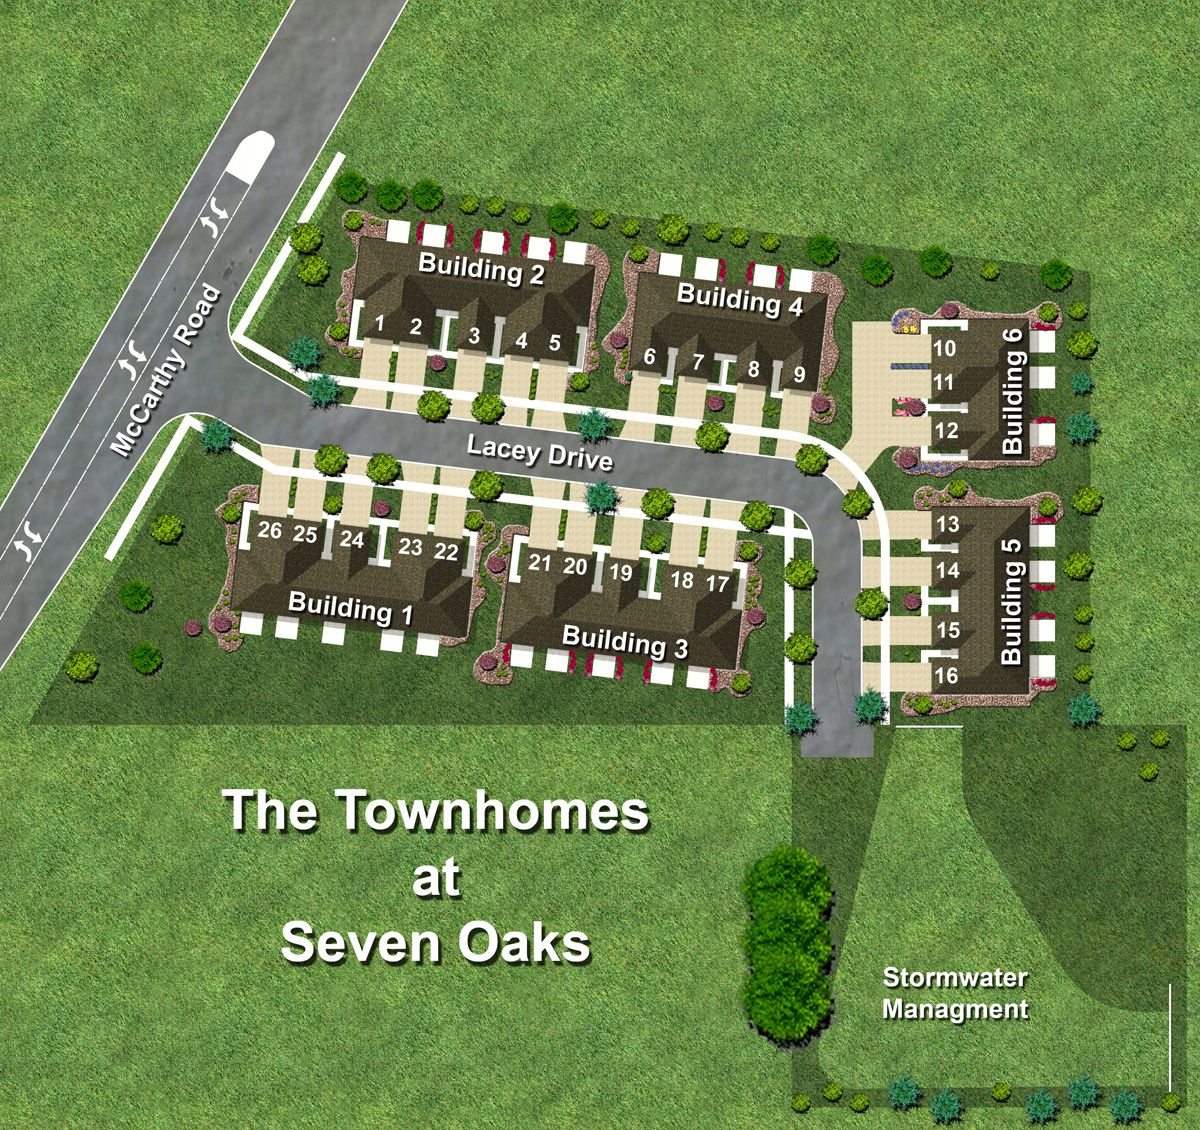 'Townhomes at Seven Oaks' by Castletown Homes in Chicago